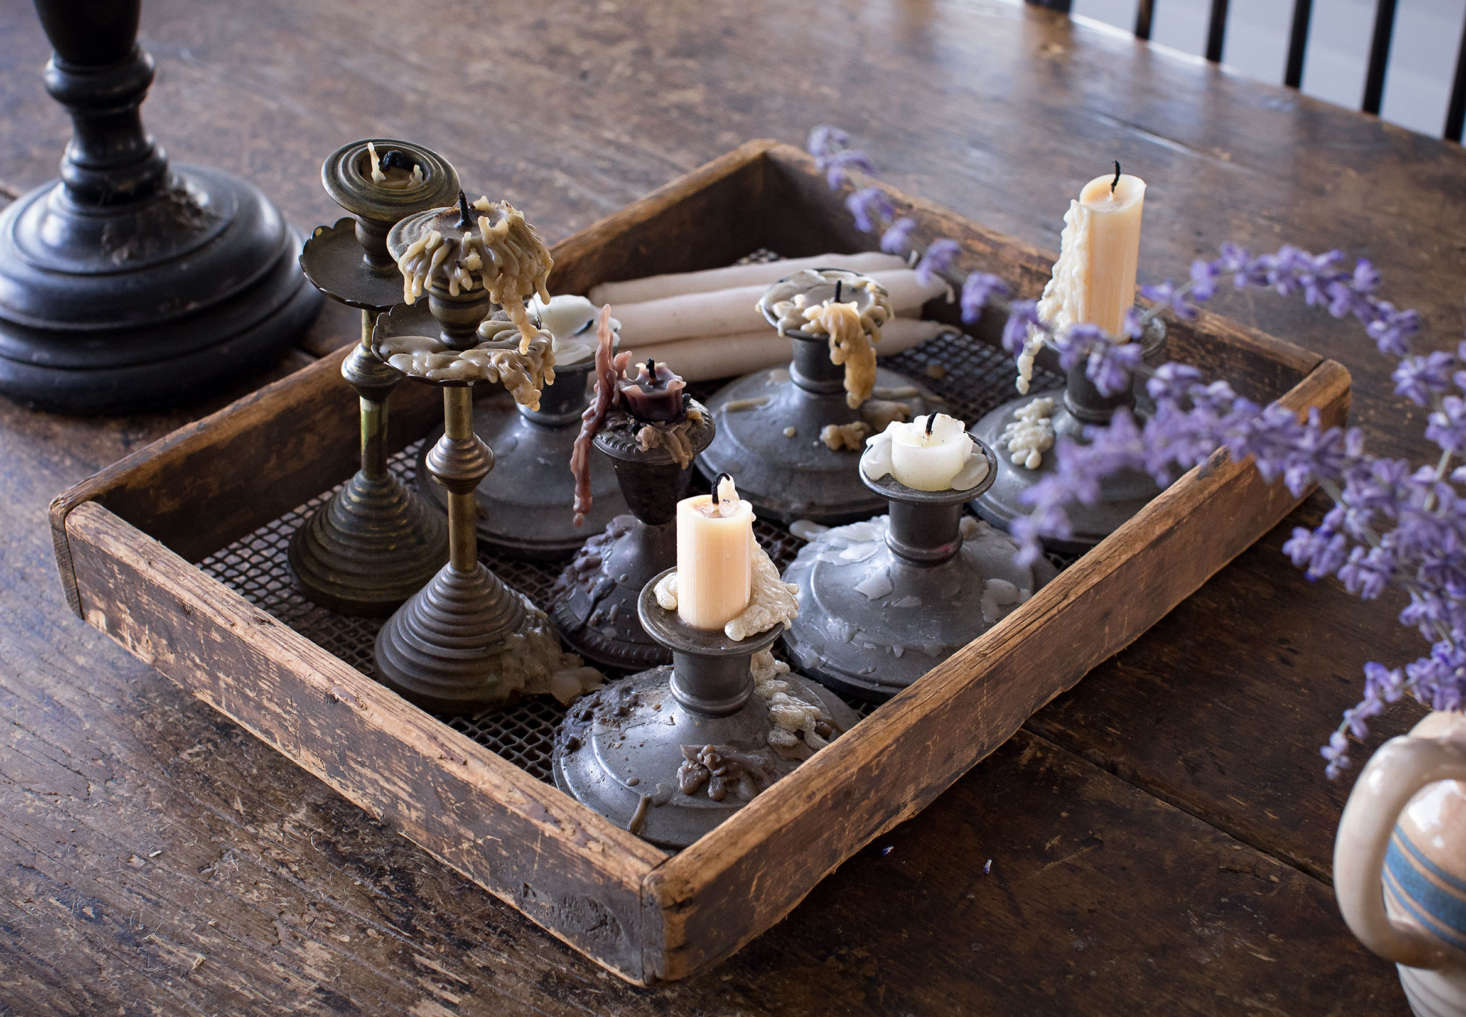 Sharon and Paul love burning beeswax candles in their collection of candlesticks, which includes American pewter as well as brass sticks that were a gift in the 70s from Sharon&#8